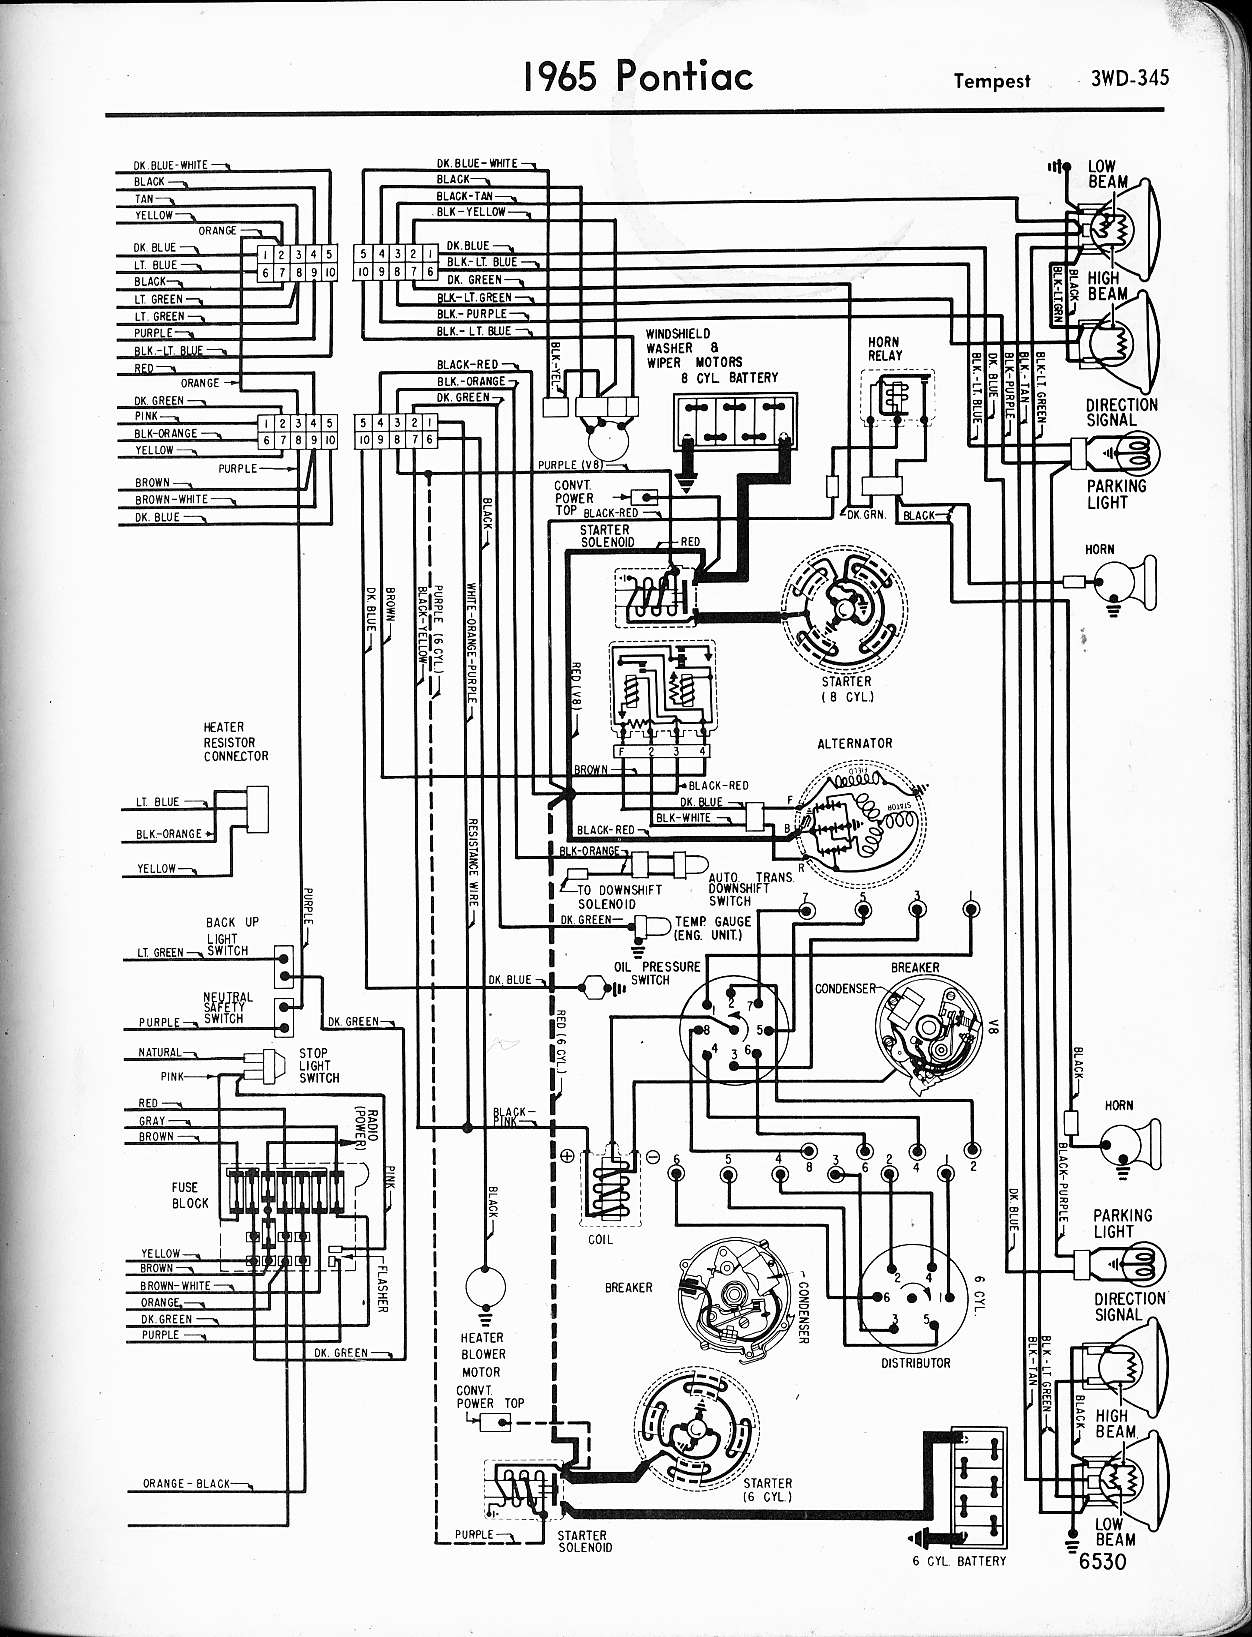 1964 chevy ignition switch wiring diagram wiring library 1969 Jeep CJ5 Wiring-Diagram 1965 gto fuse box data wiring schema 1968 chevrolet chevelle wiring diagram 1965 chevelle wiring diagram